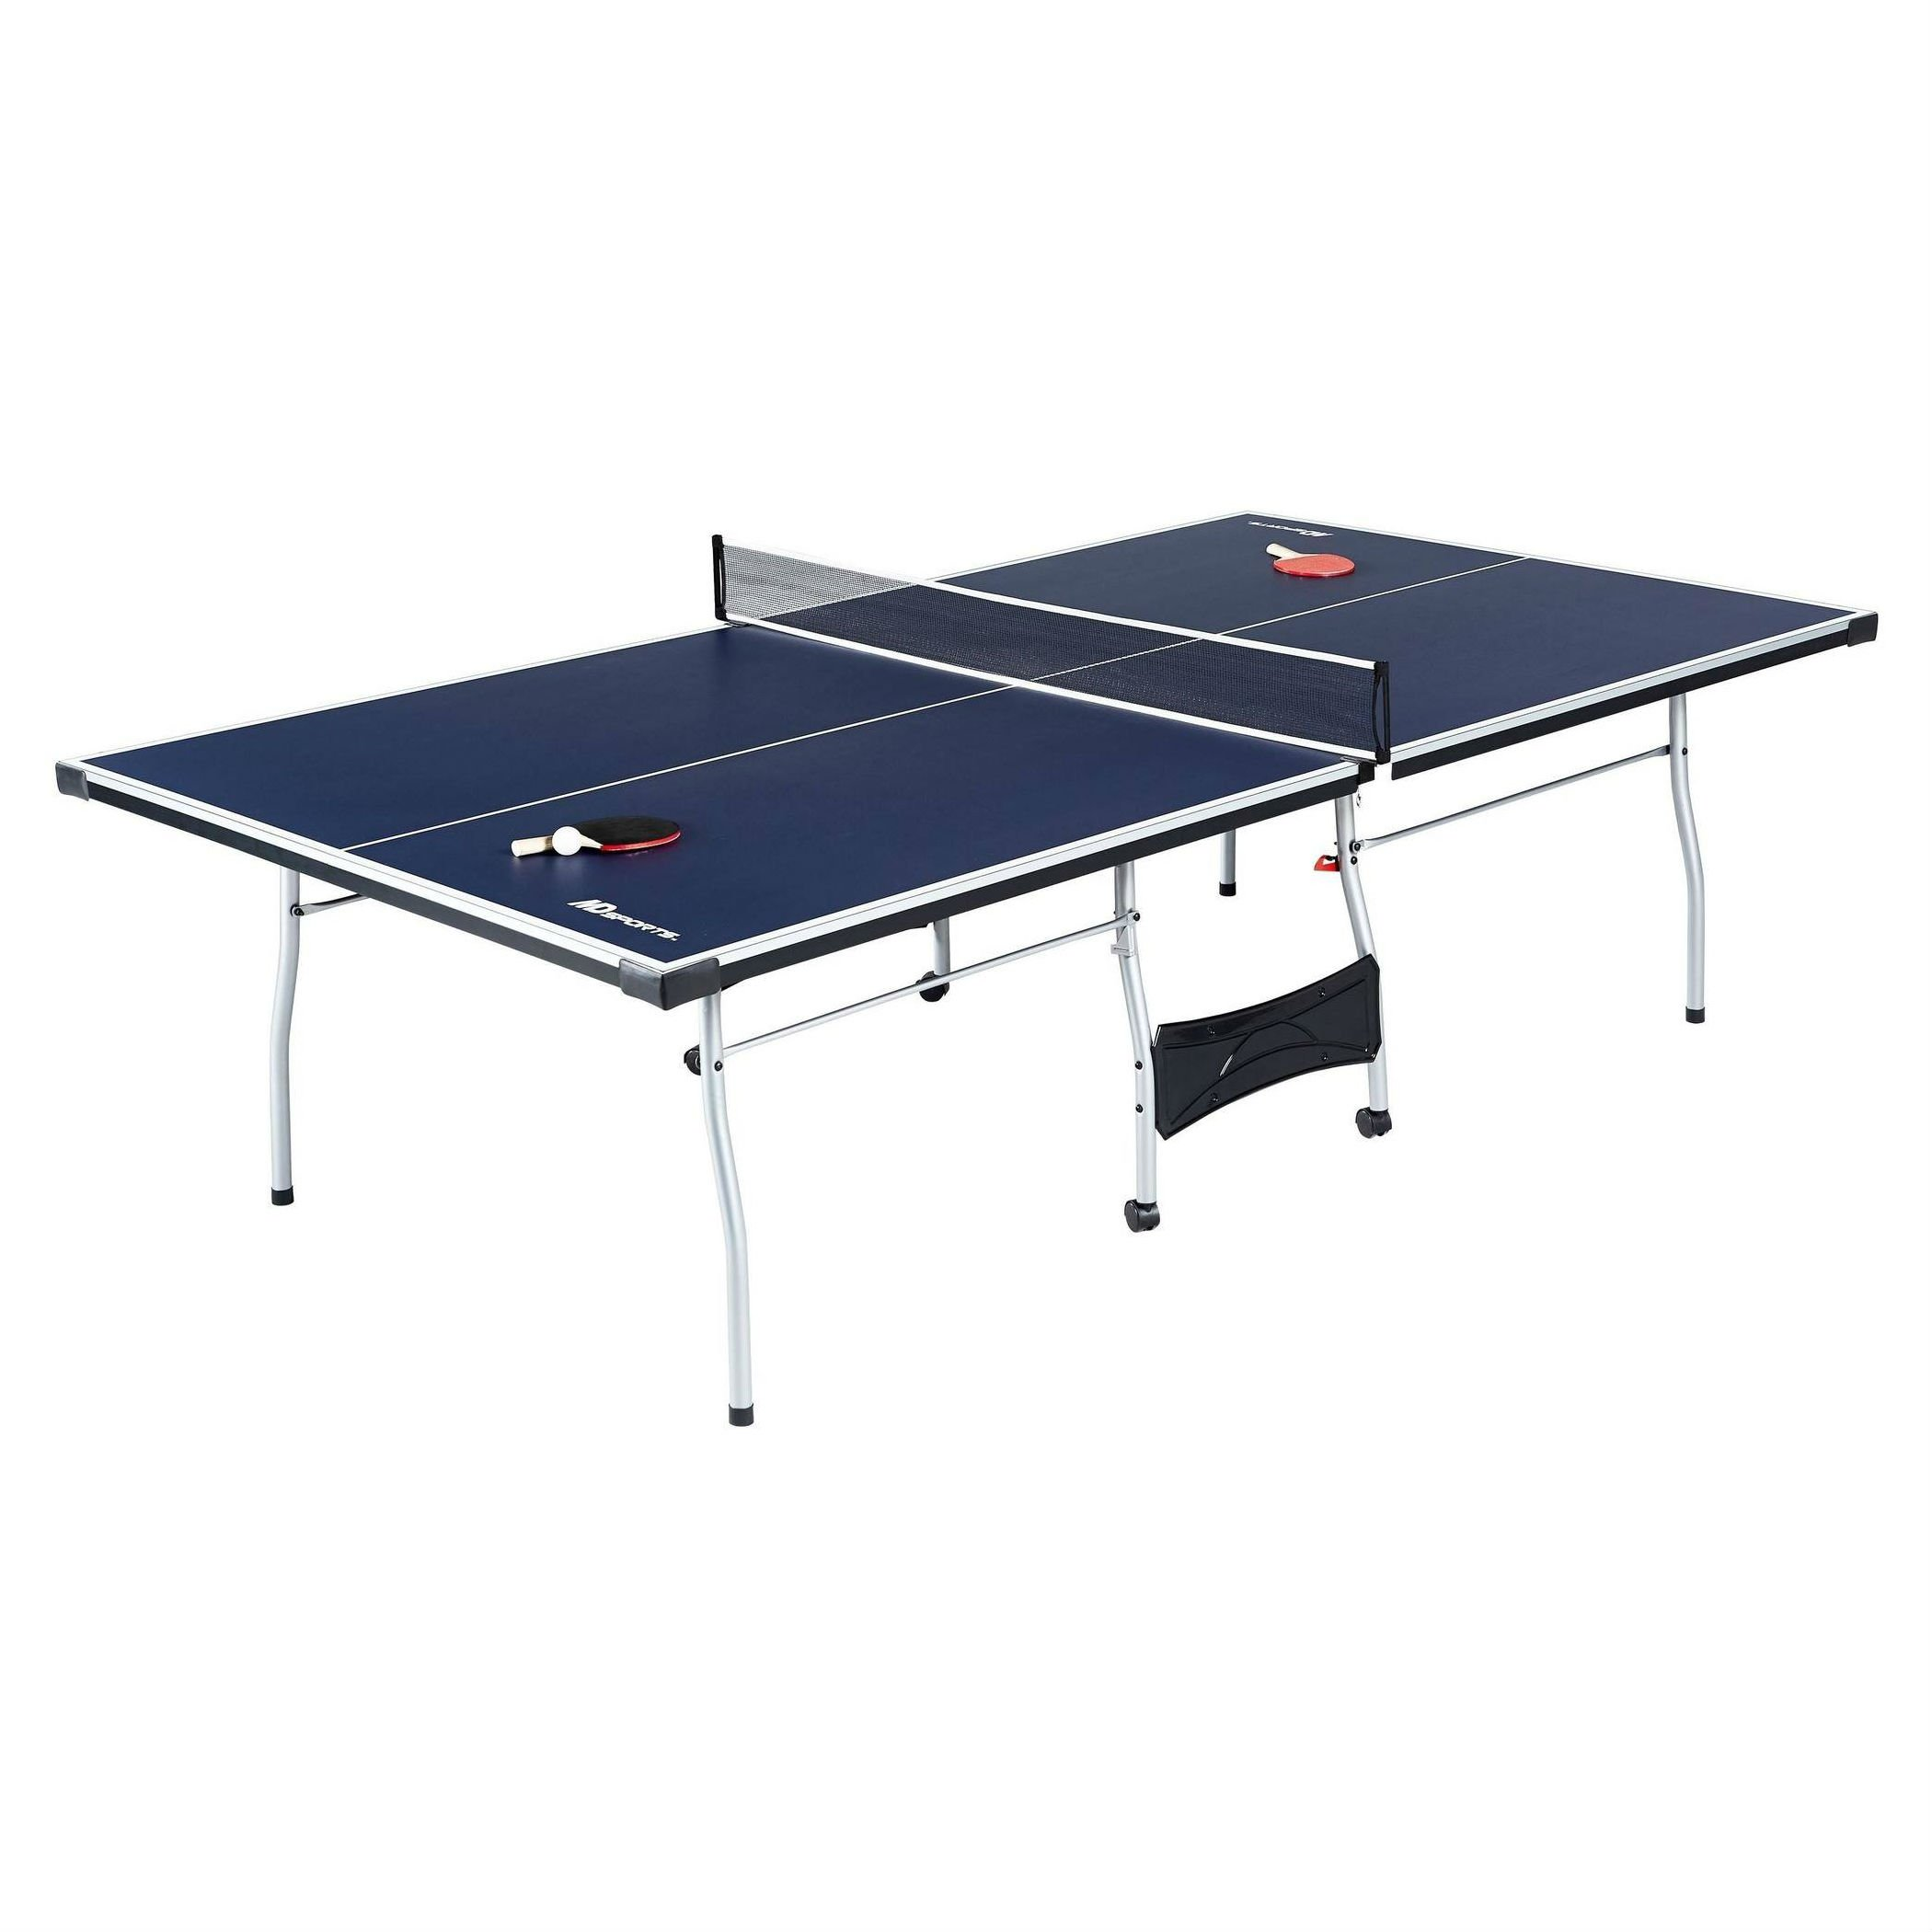 MD Sports 4-Piece Table Tennis Table Hottest Items Now